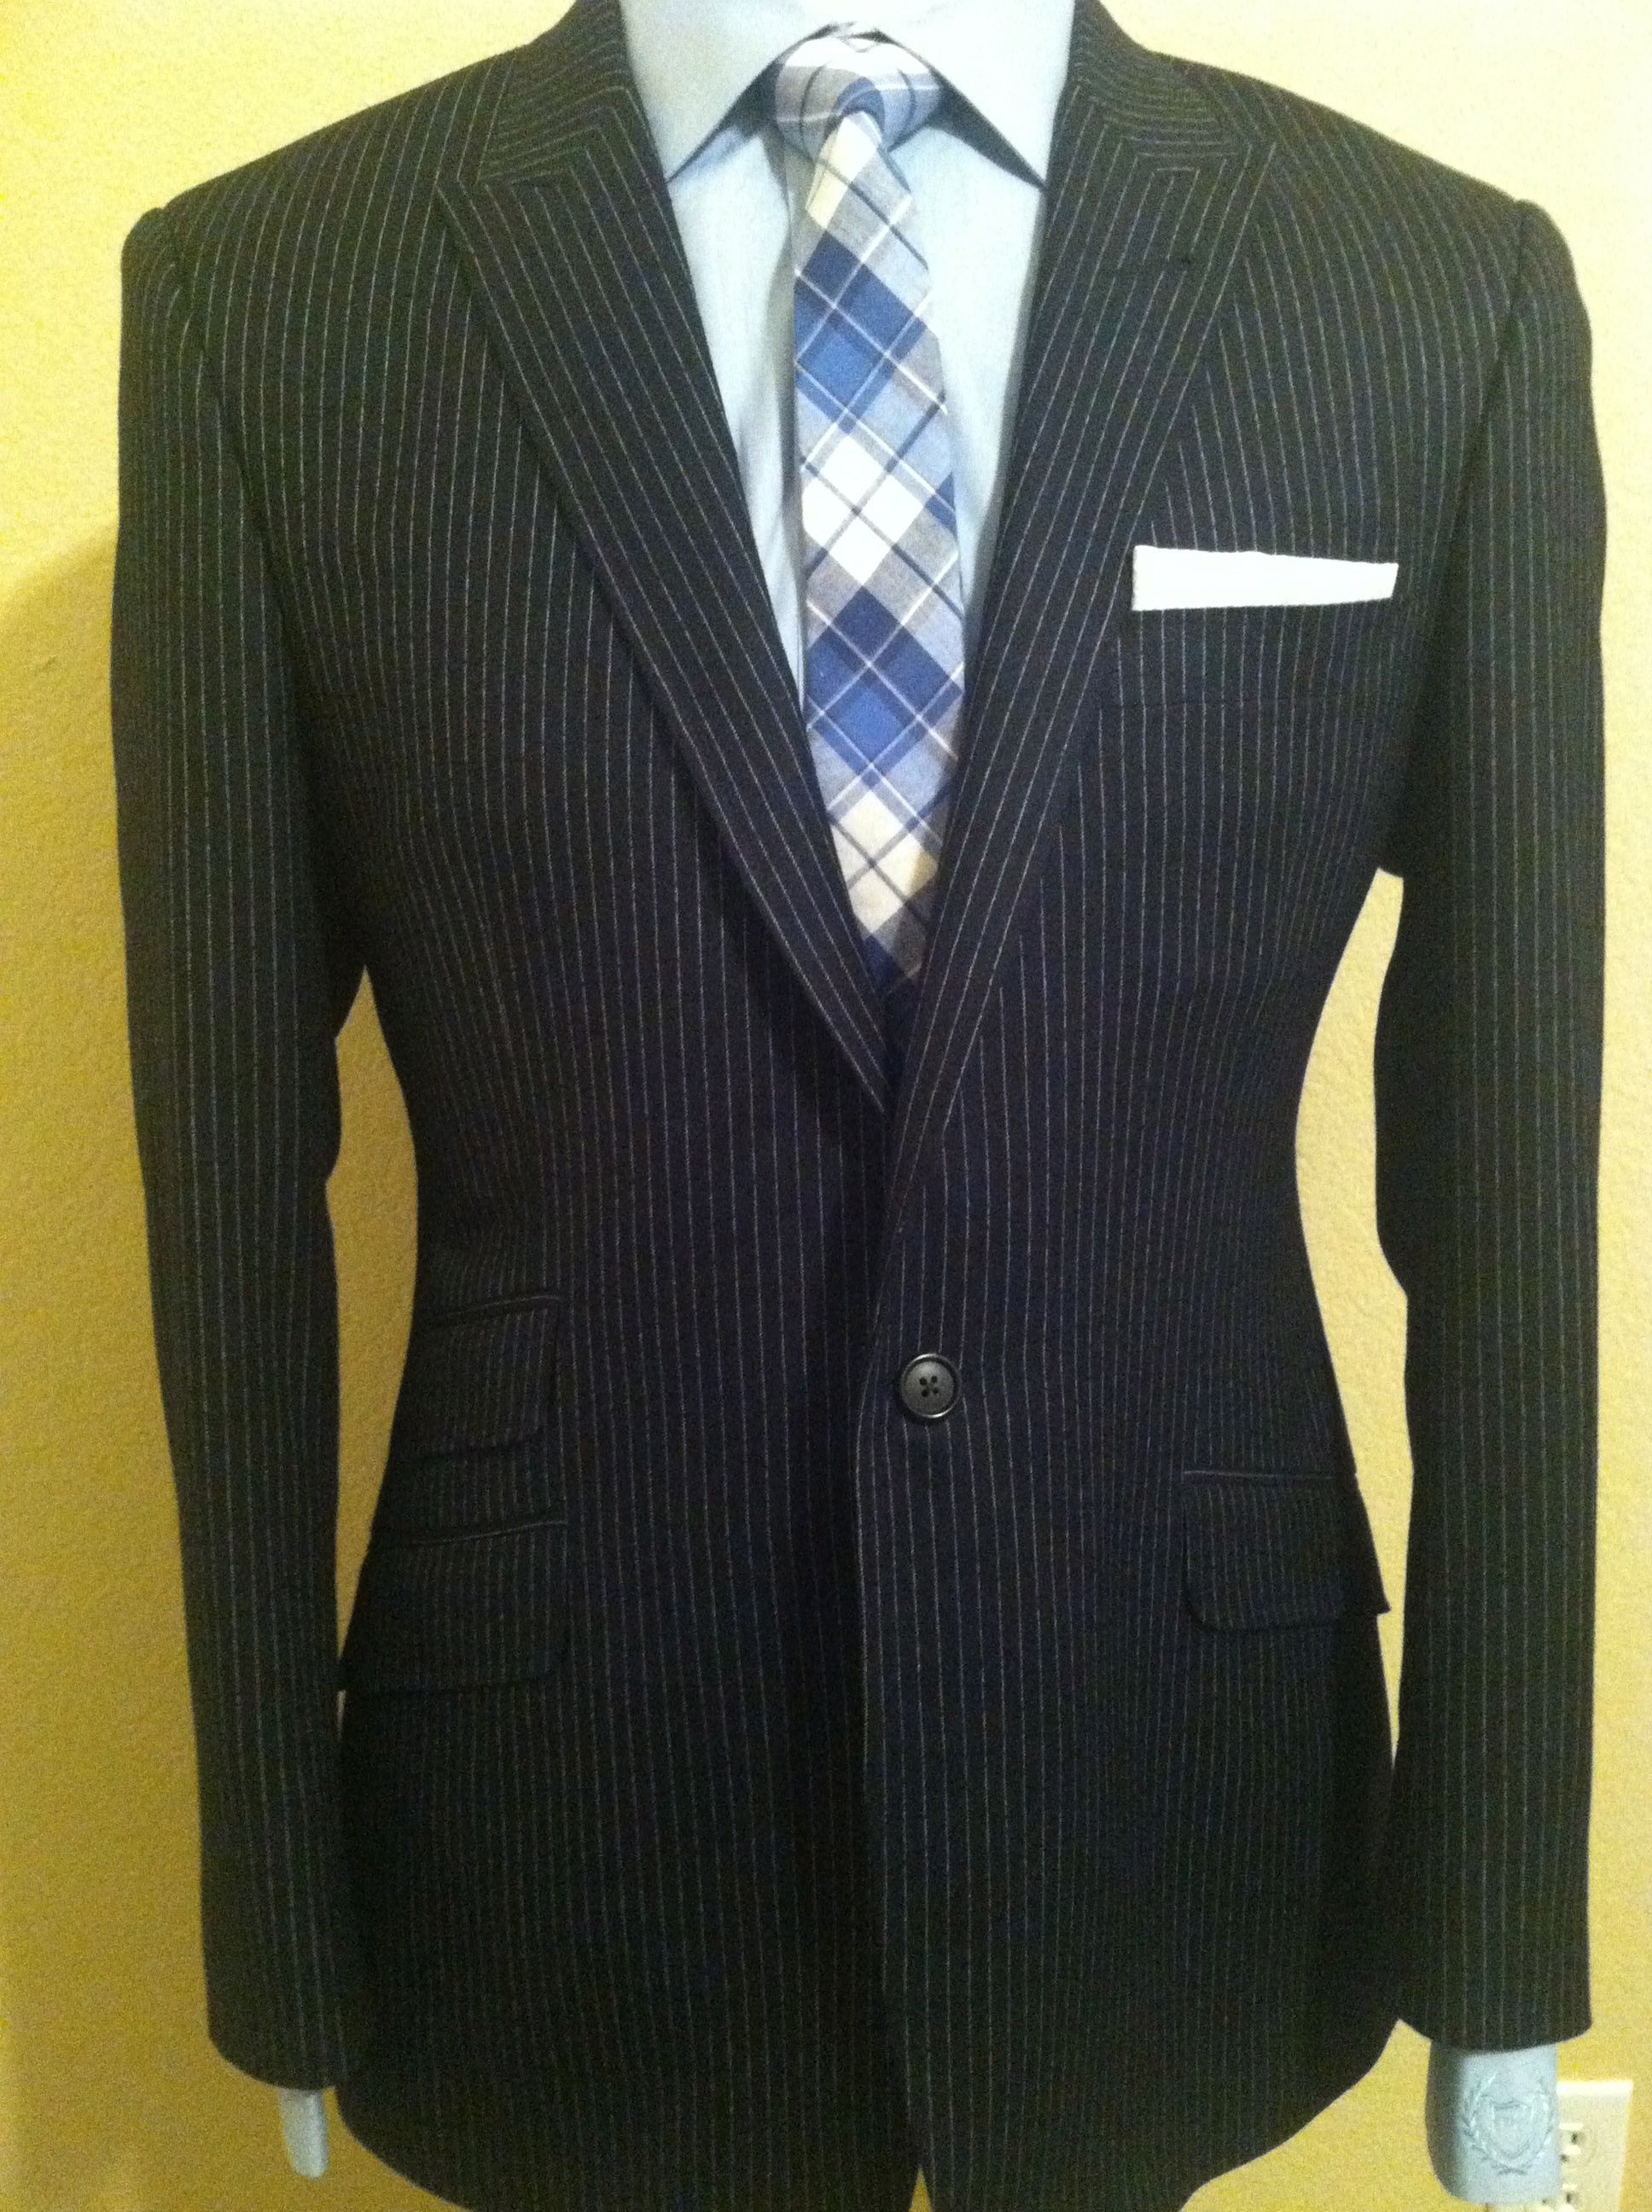 Pocket Square - Brown, blue and white plaid Notch